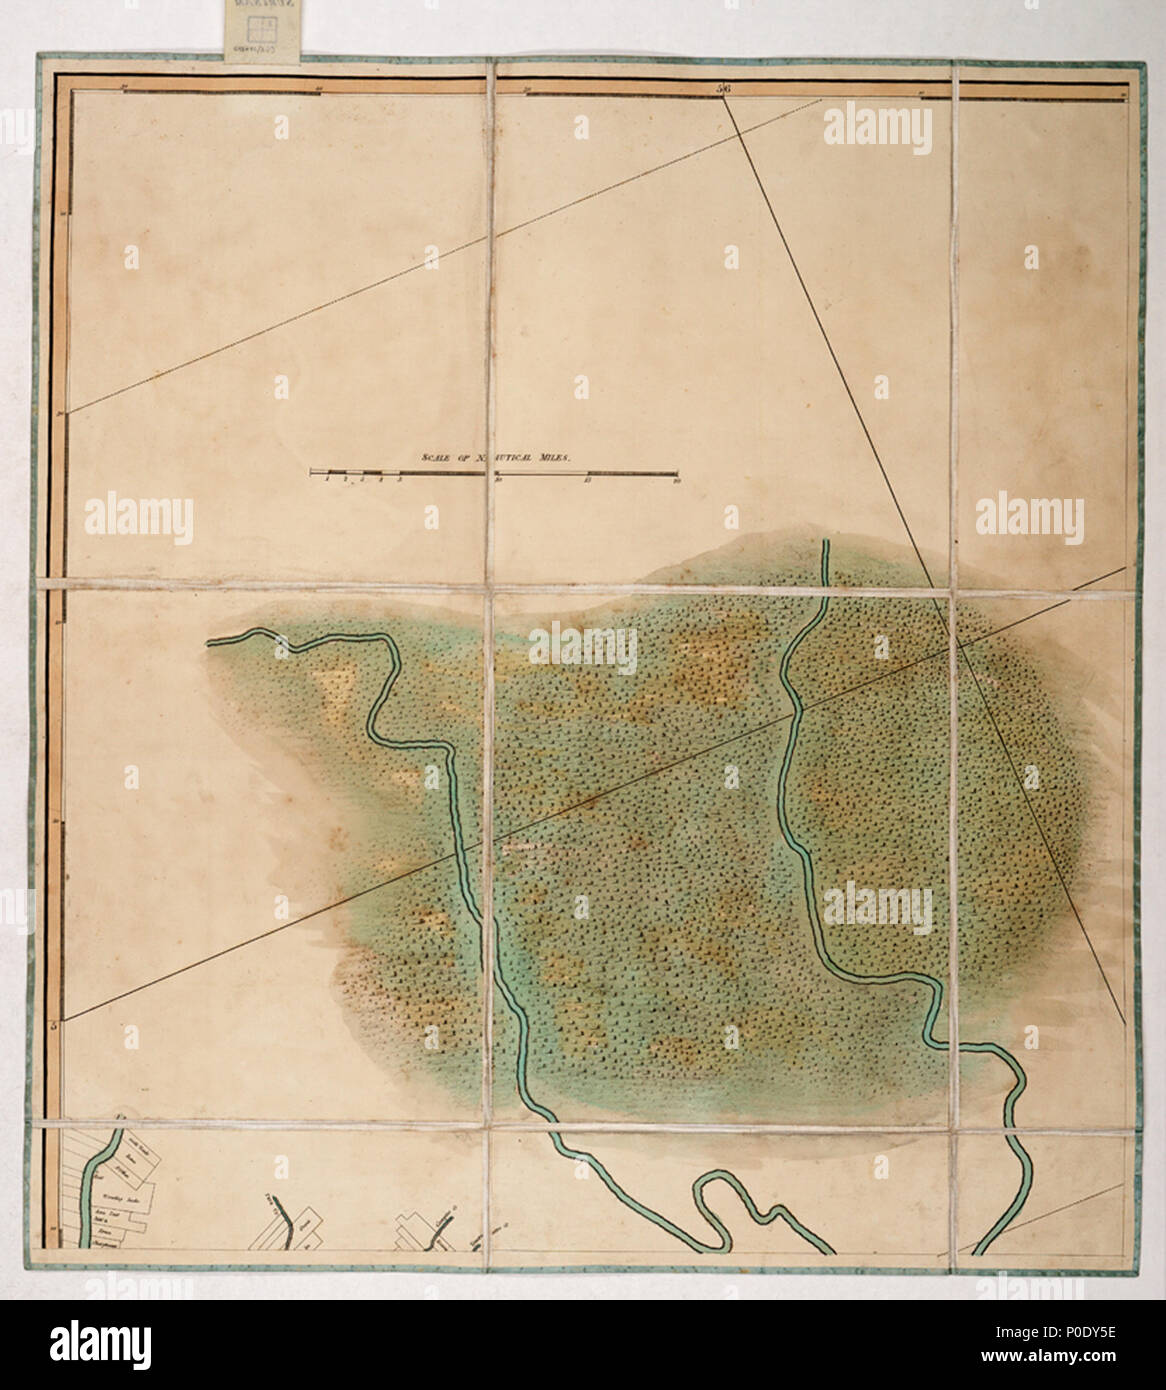 .  English: A chart of the colony of Surinam, on the coast of Guyana.Four sheets. Hand col. engr. Medium: Segmented and backed. Scale: 1:200 000 (bar). Cartographic Note: North at 336 degrees. Graduated. Soundings and seabed soundings shown. Scale in nautical miles. Additional Places: Suriname, Commewijne River, Corantijn River. Contents Note: Property boundaries and vegetation are shown on the land, Sailing directions include a note about dangerous banks where the Thorn Sloop of War ran aground in 1796 and was obliged to throw her guns overboard. Gren82/3(1) A chart of the colony of Surinam,  - Stock Image